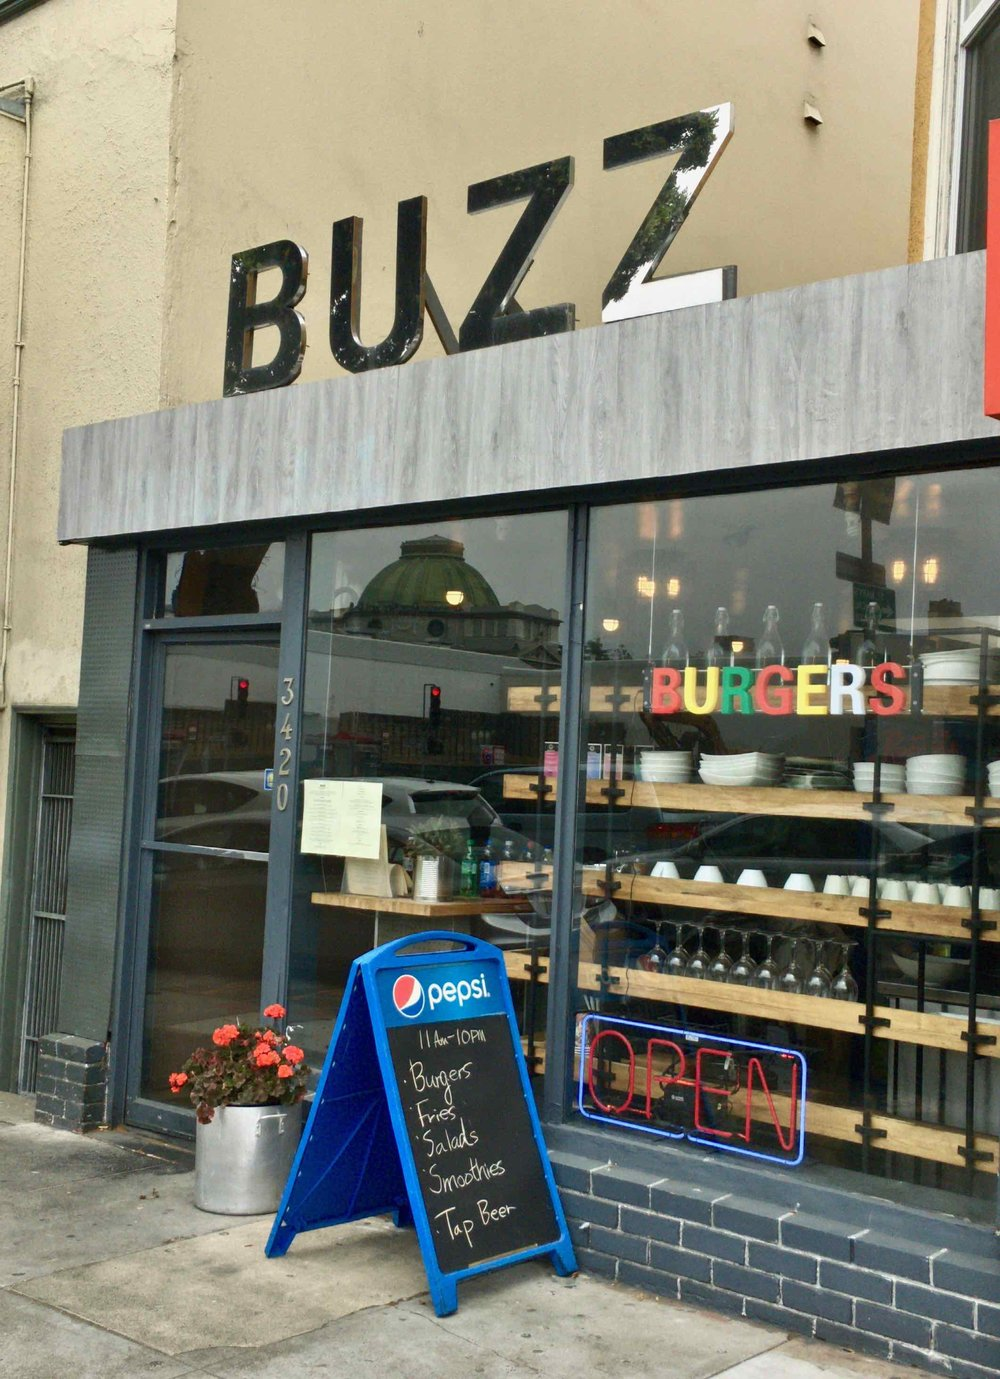 Buzz Burgers (yes I ignored the part that said salads)